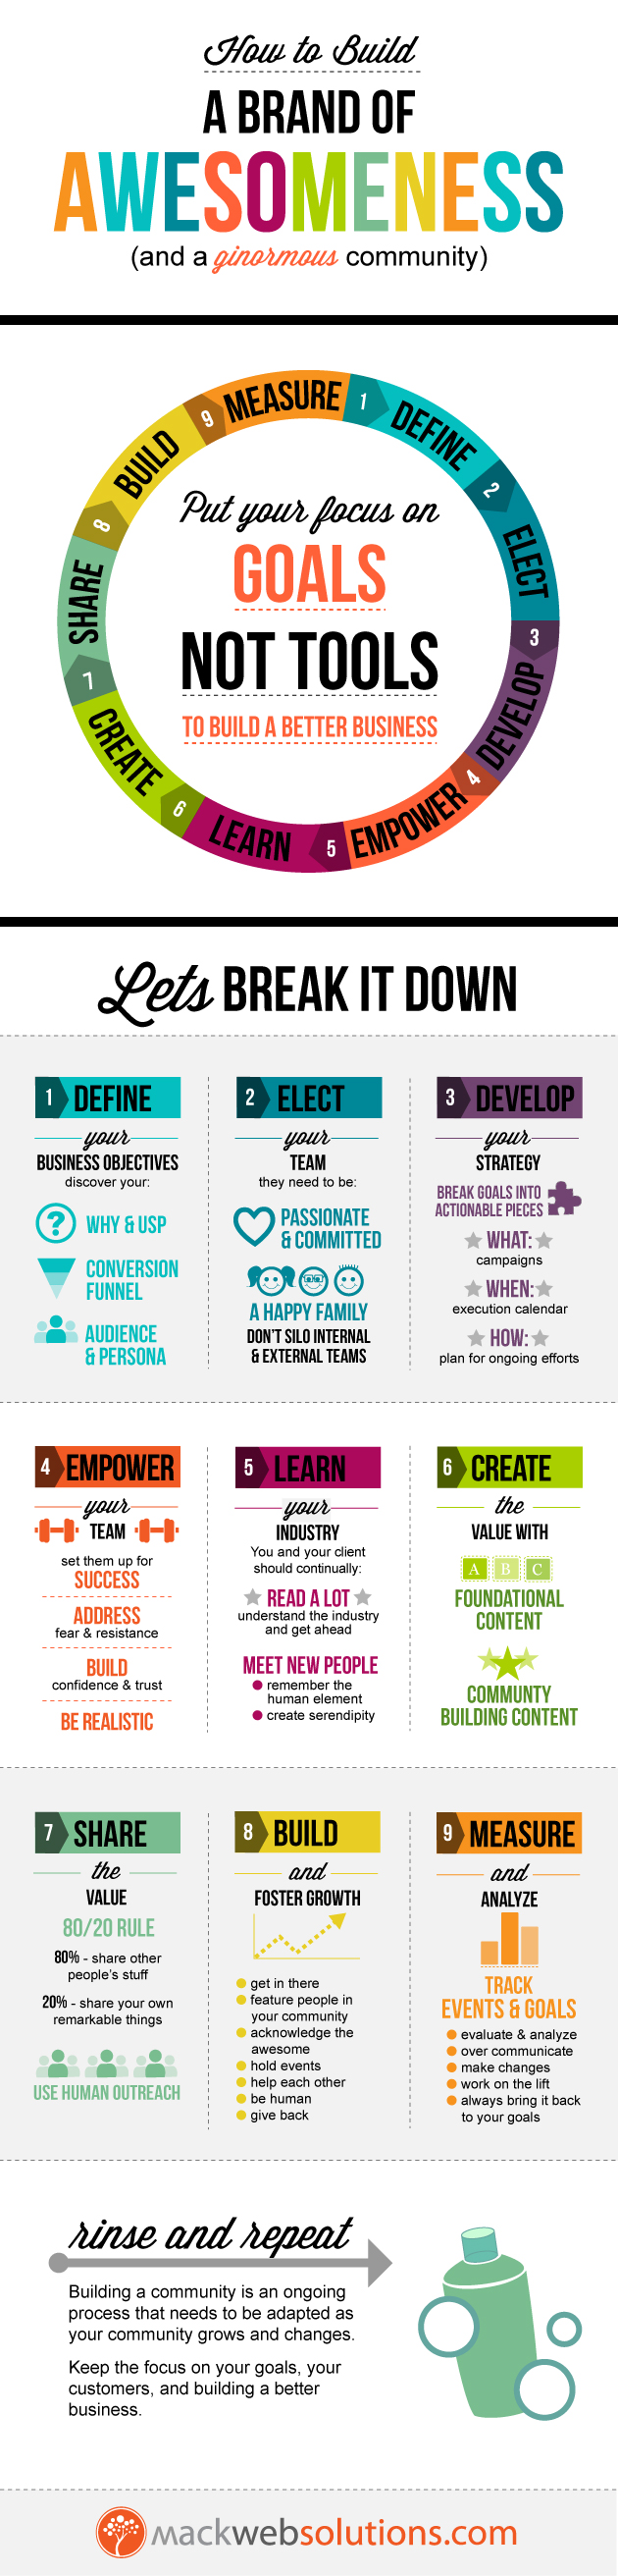 How to build a brand of awesomeness [infographic]